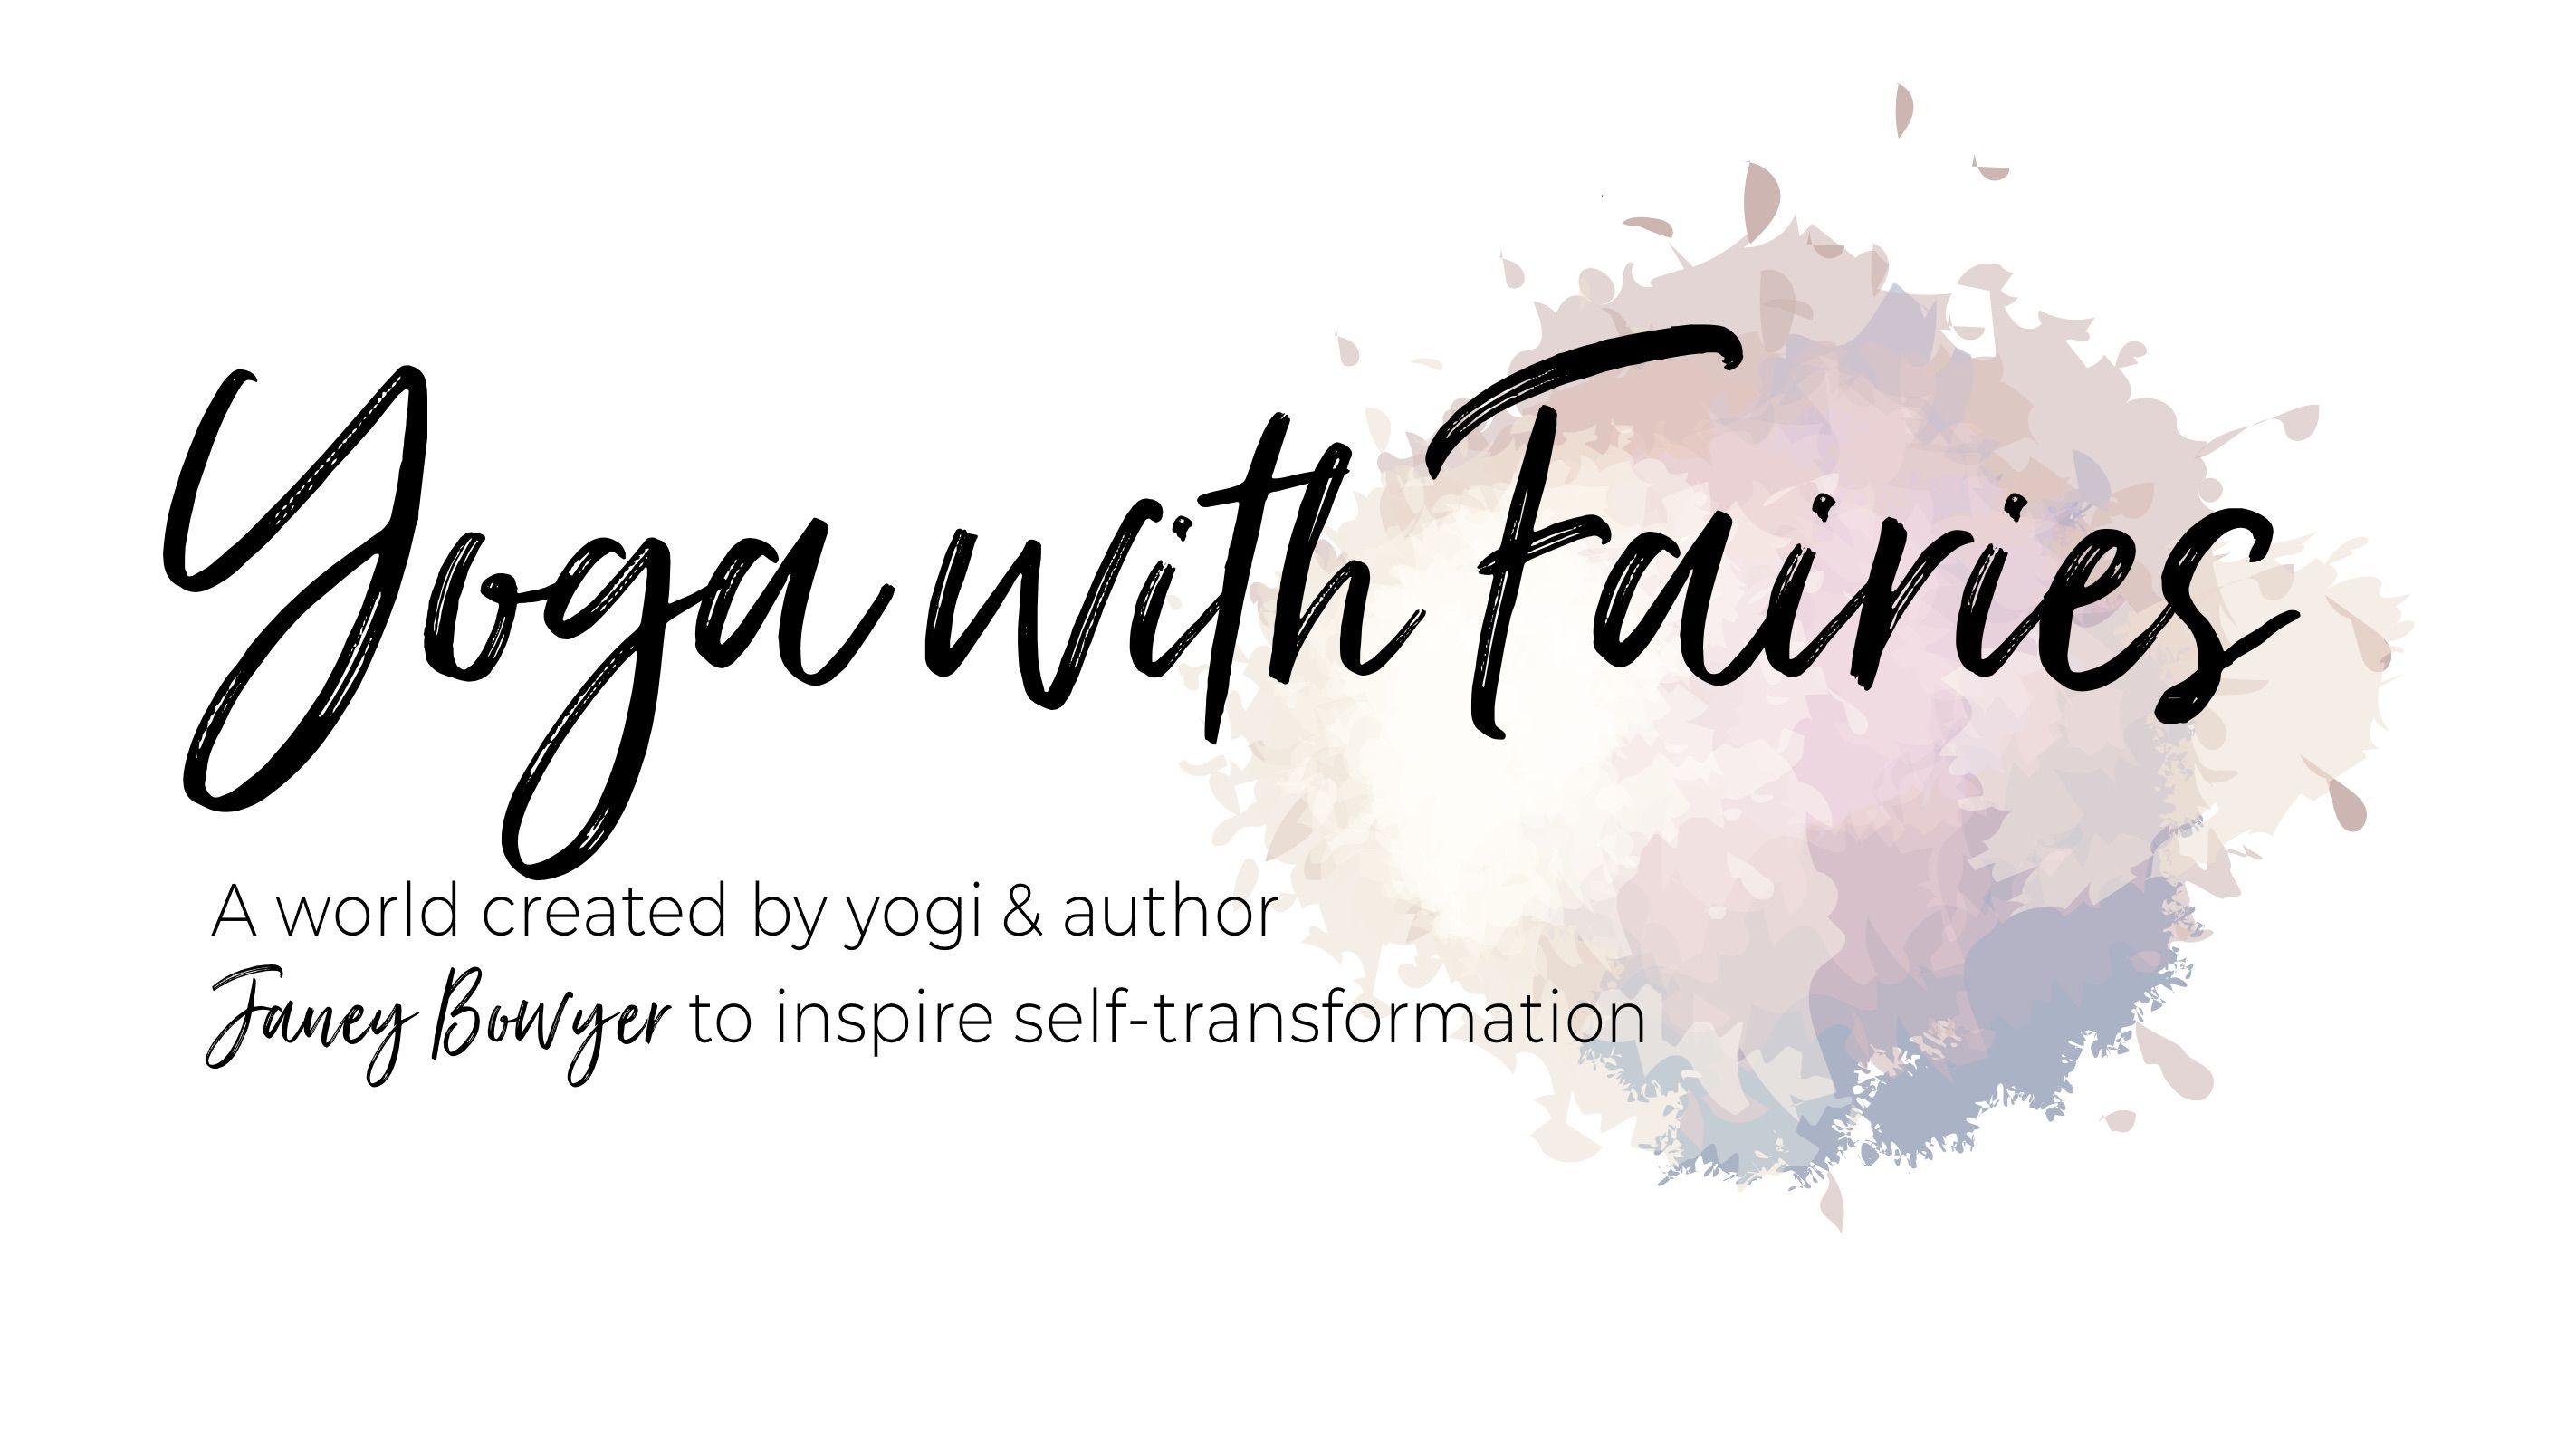 My New Website Name For Tree Meditations Yoga And Self Help Ideas With Images Self Help Self Article Writing